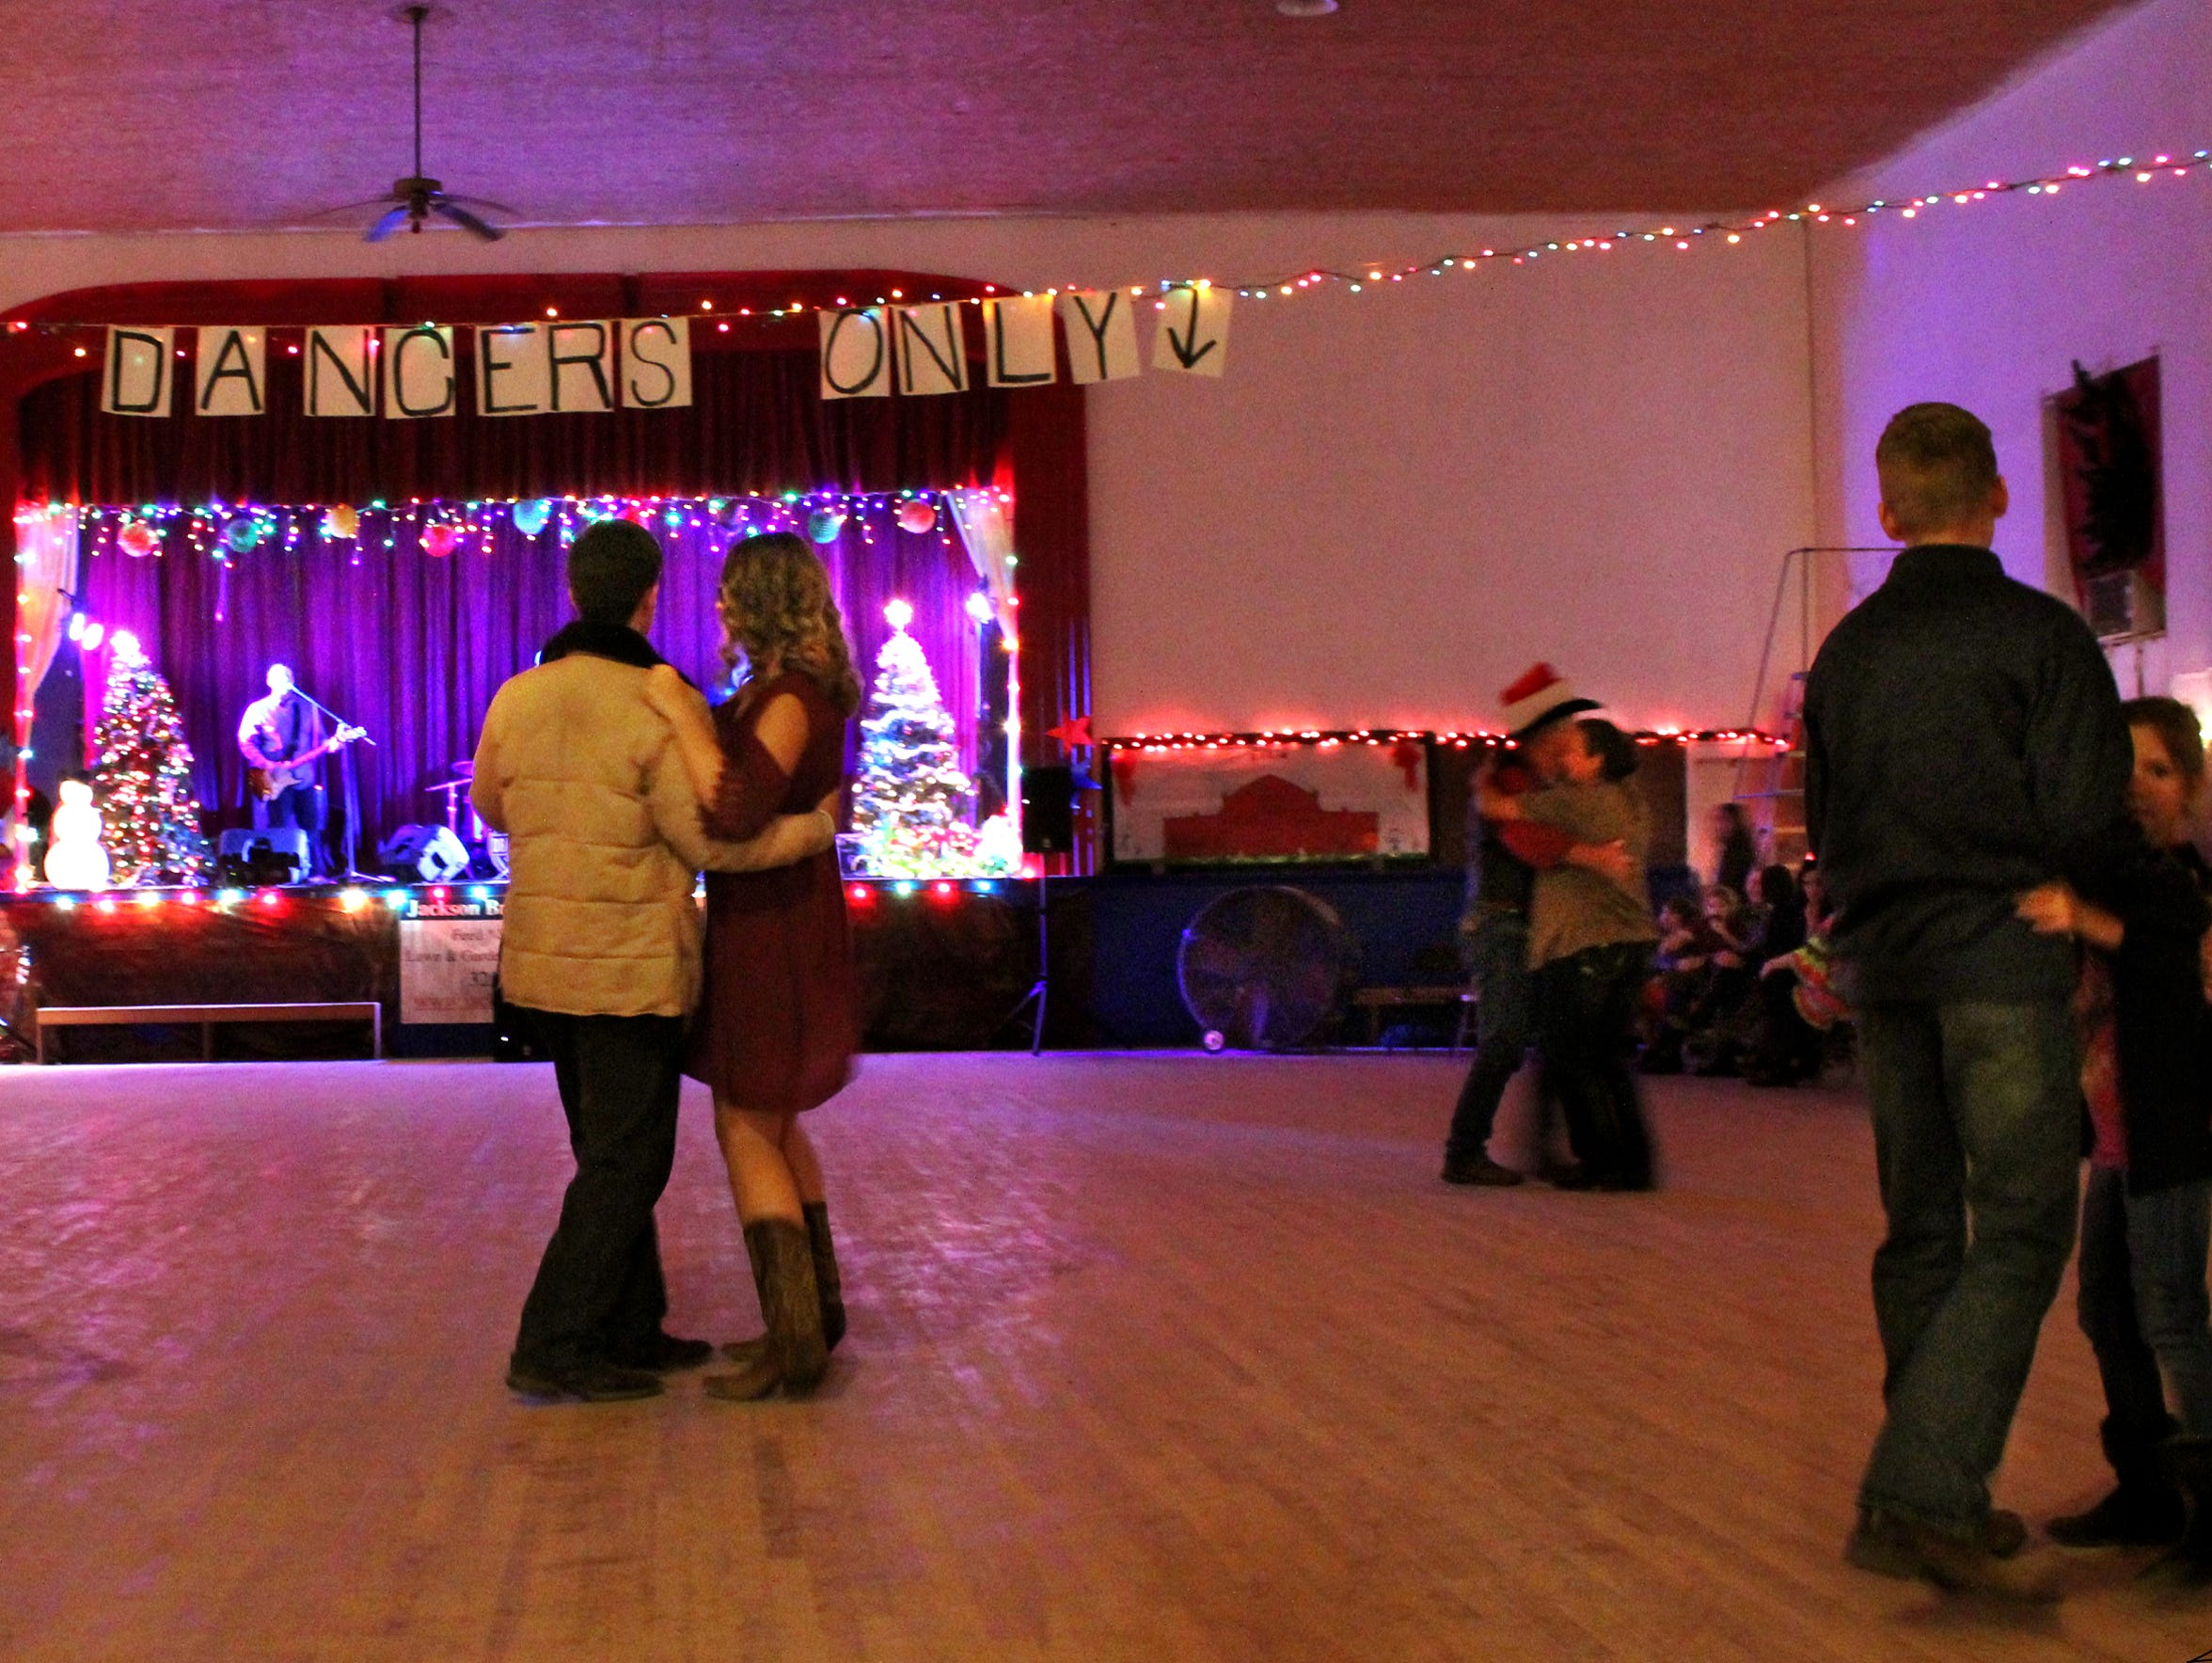 Couples become more silhouetted when the lights are dimmed at Oplin Dancehall. Lasts weekend, the Drake Hayes Band of Lubbock was the first band on stage in months at the dance hall. Other times, a deejay plays.